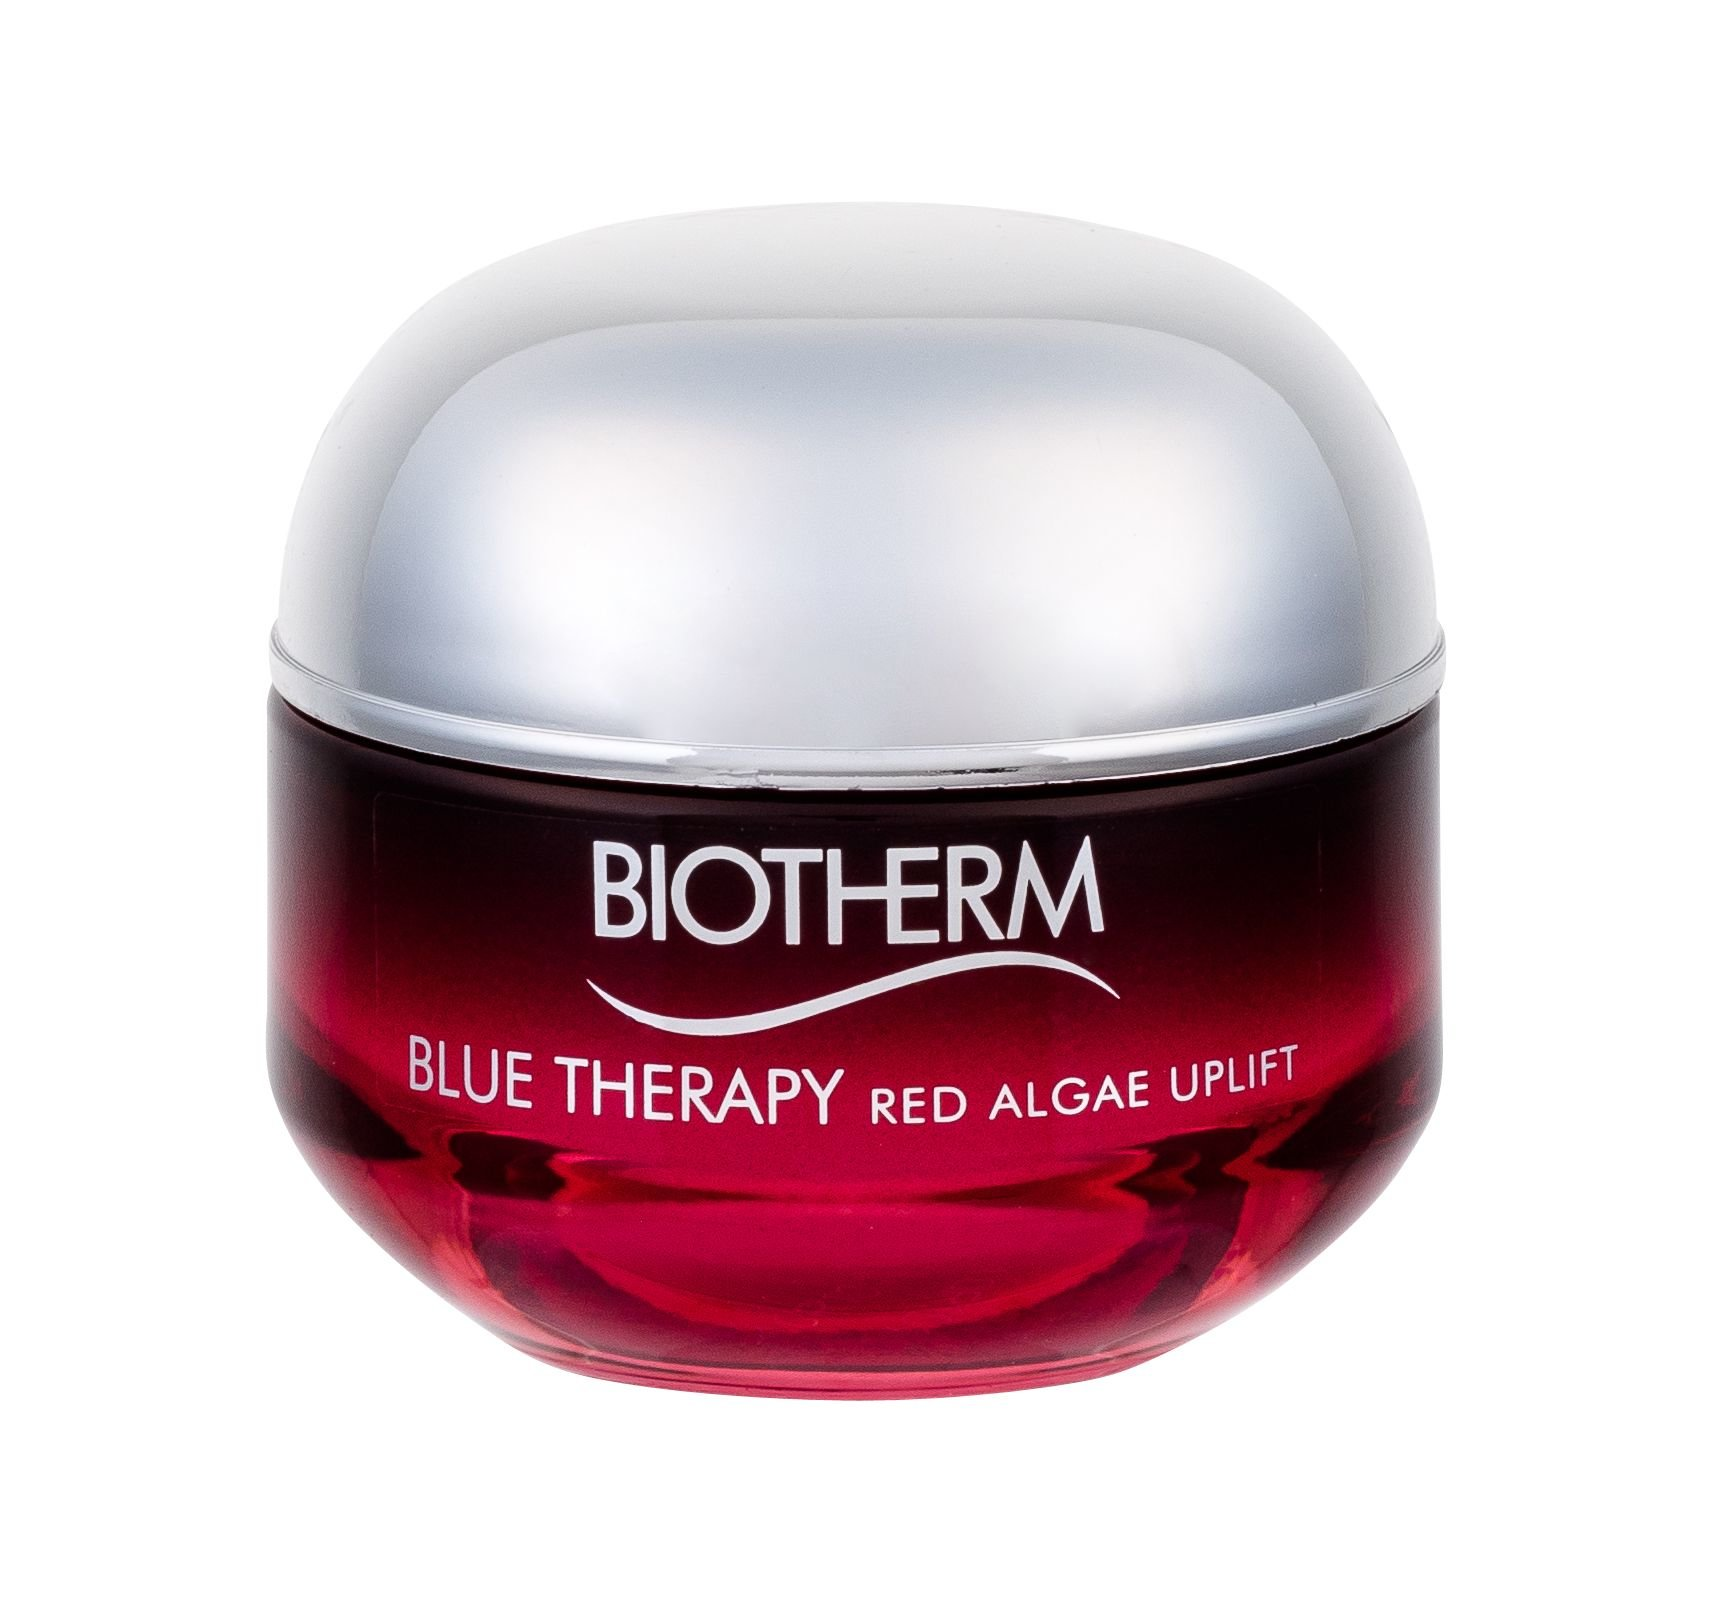 Biotherm Blue Therapy Day Cream 50ml  Red Algae Uplift